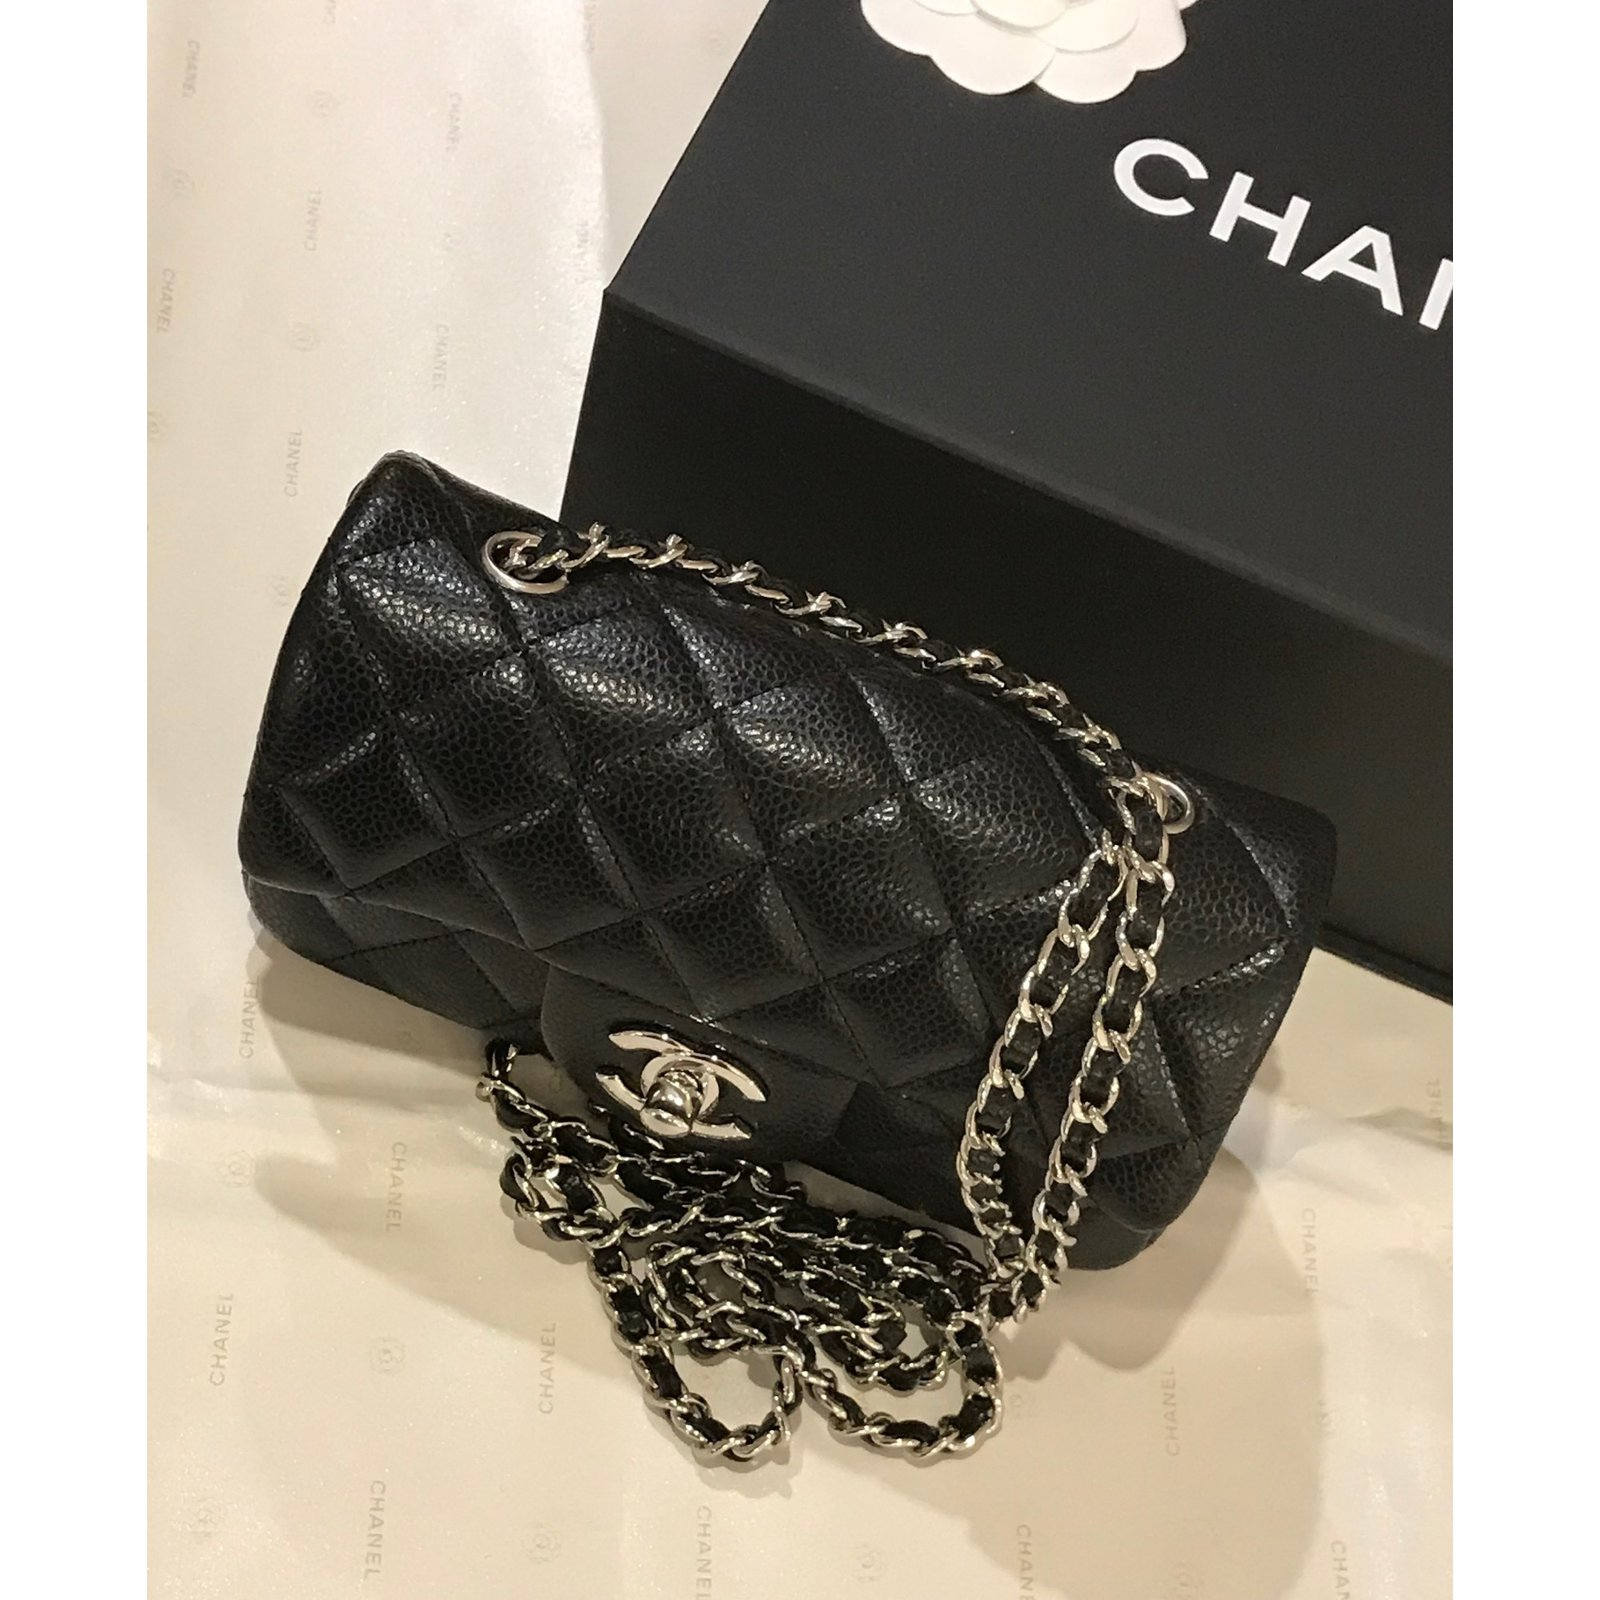 e1c582d741bd91 Chanel extra mini classic flap bag in black caviar leather with silver hw  Handbags Leather Black ref.69264 - Joli Closet